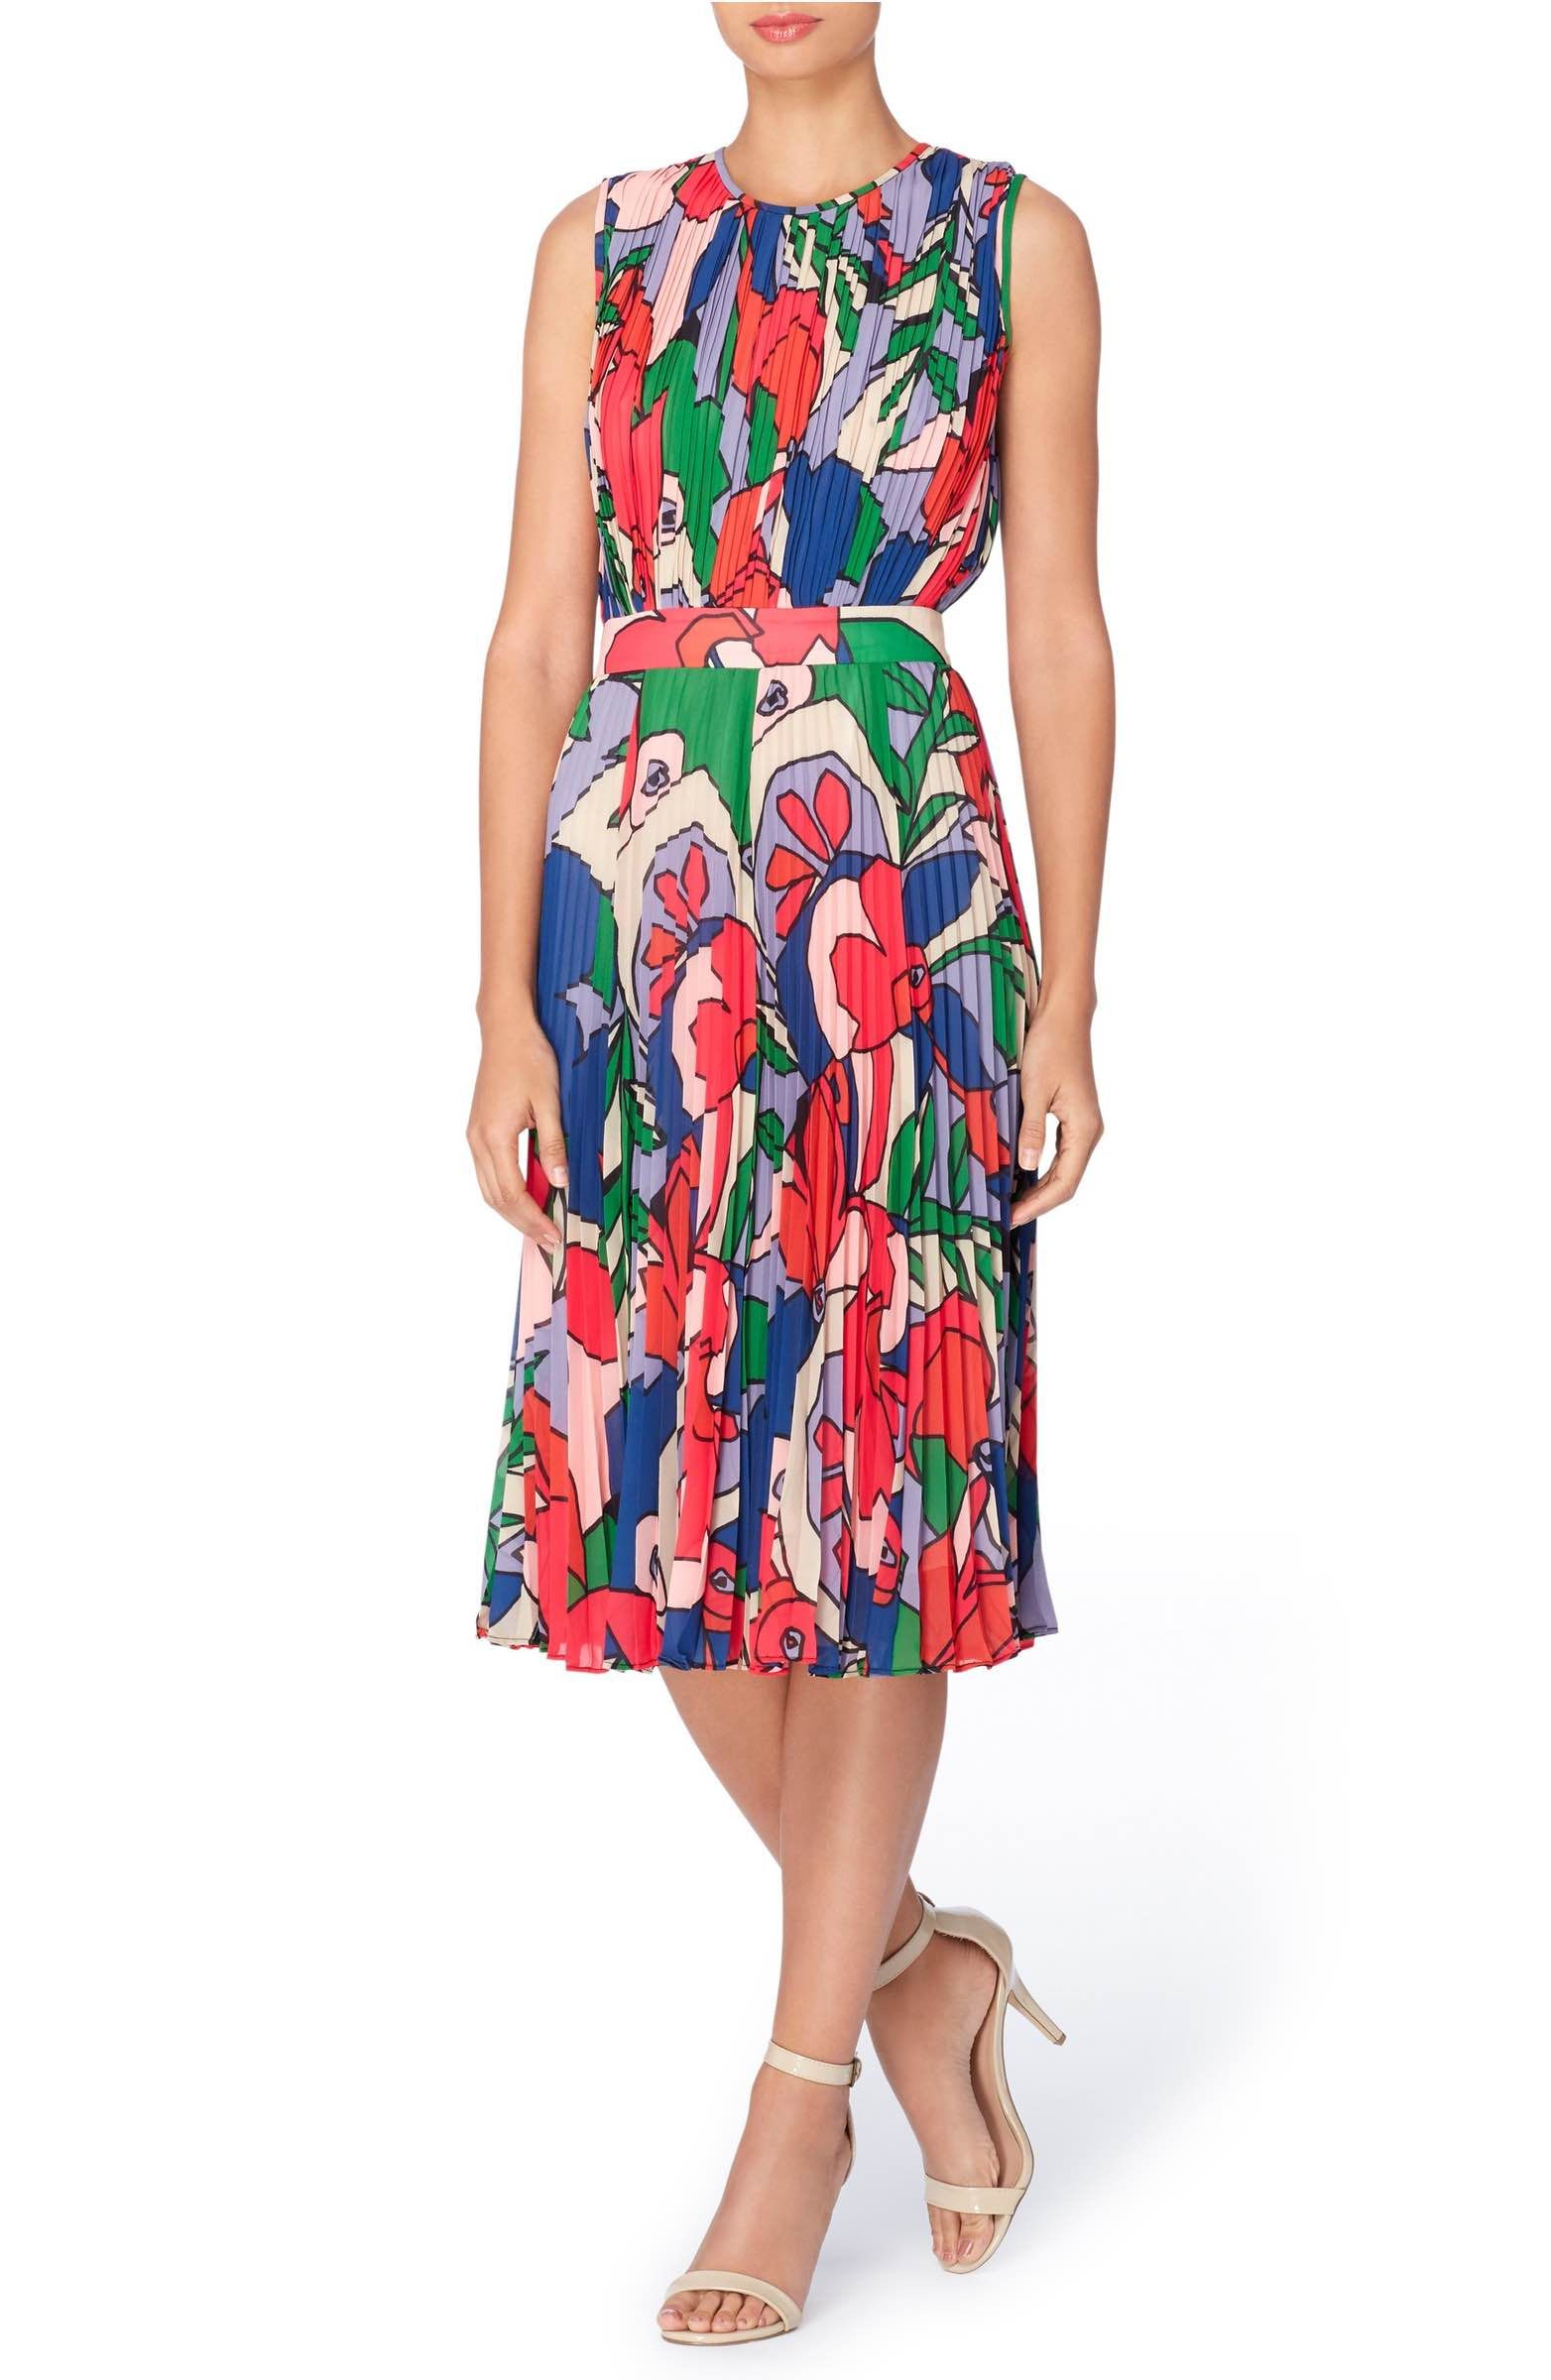 Main Image - Cateherine Catherine Malandrino Desree Pleat Midi Dress